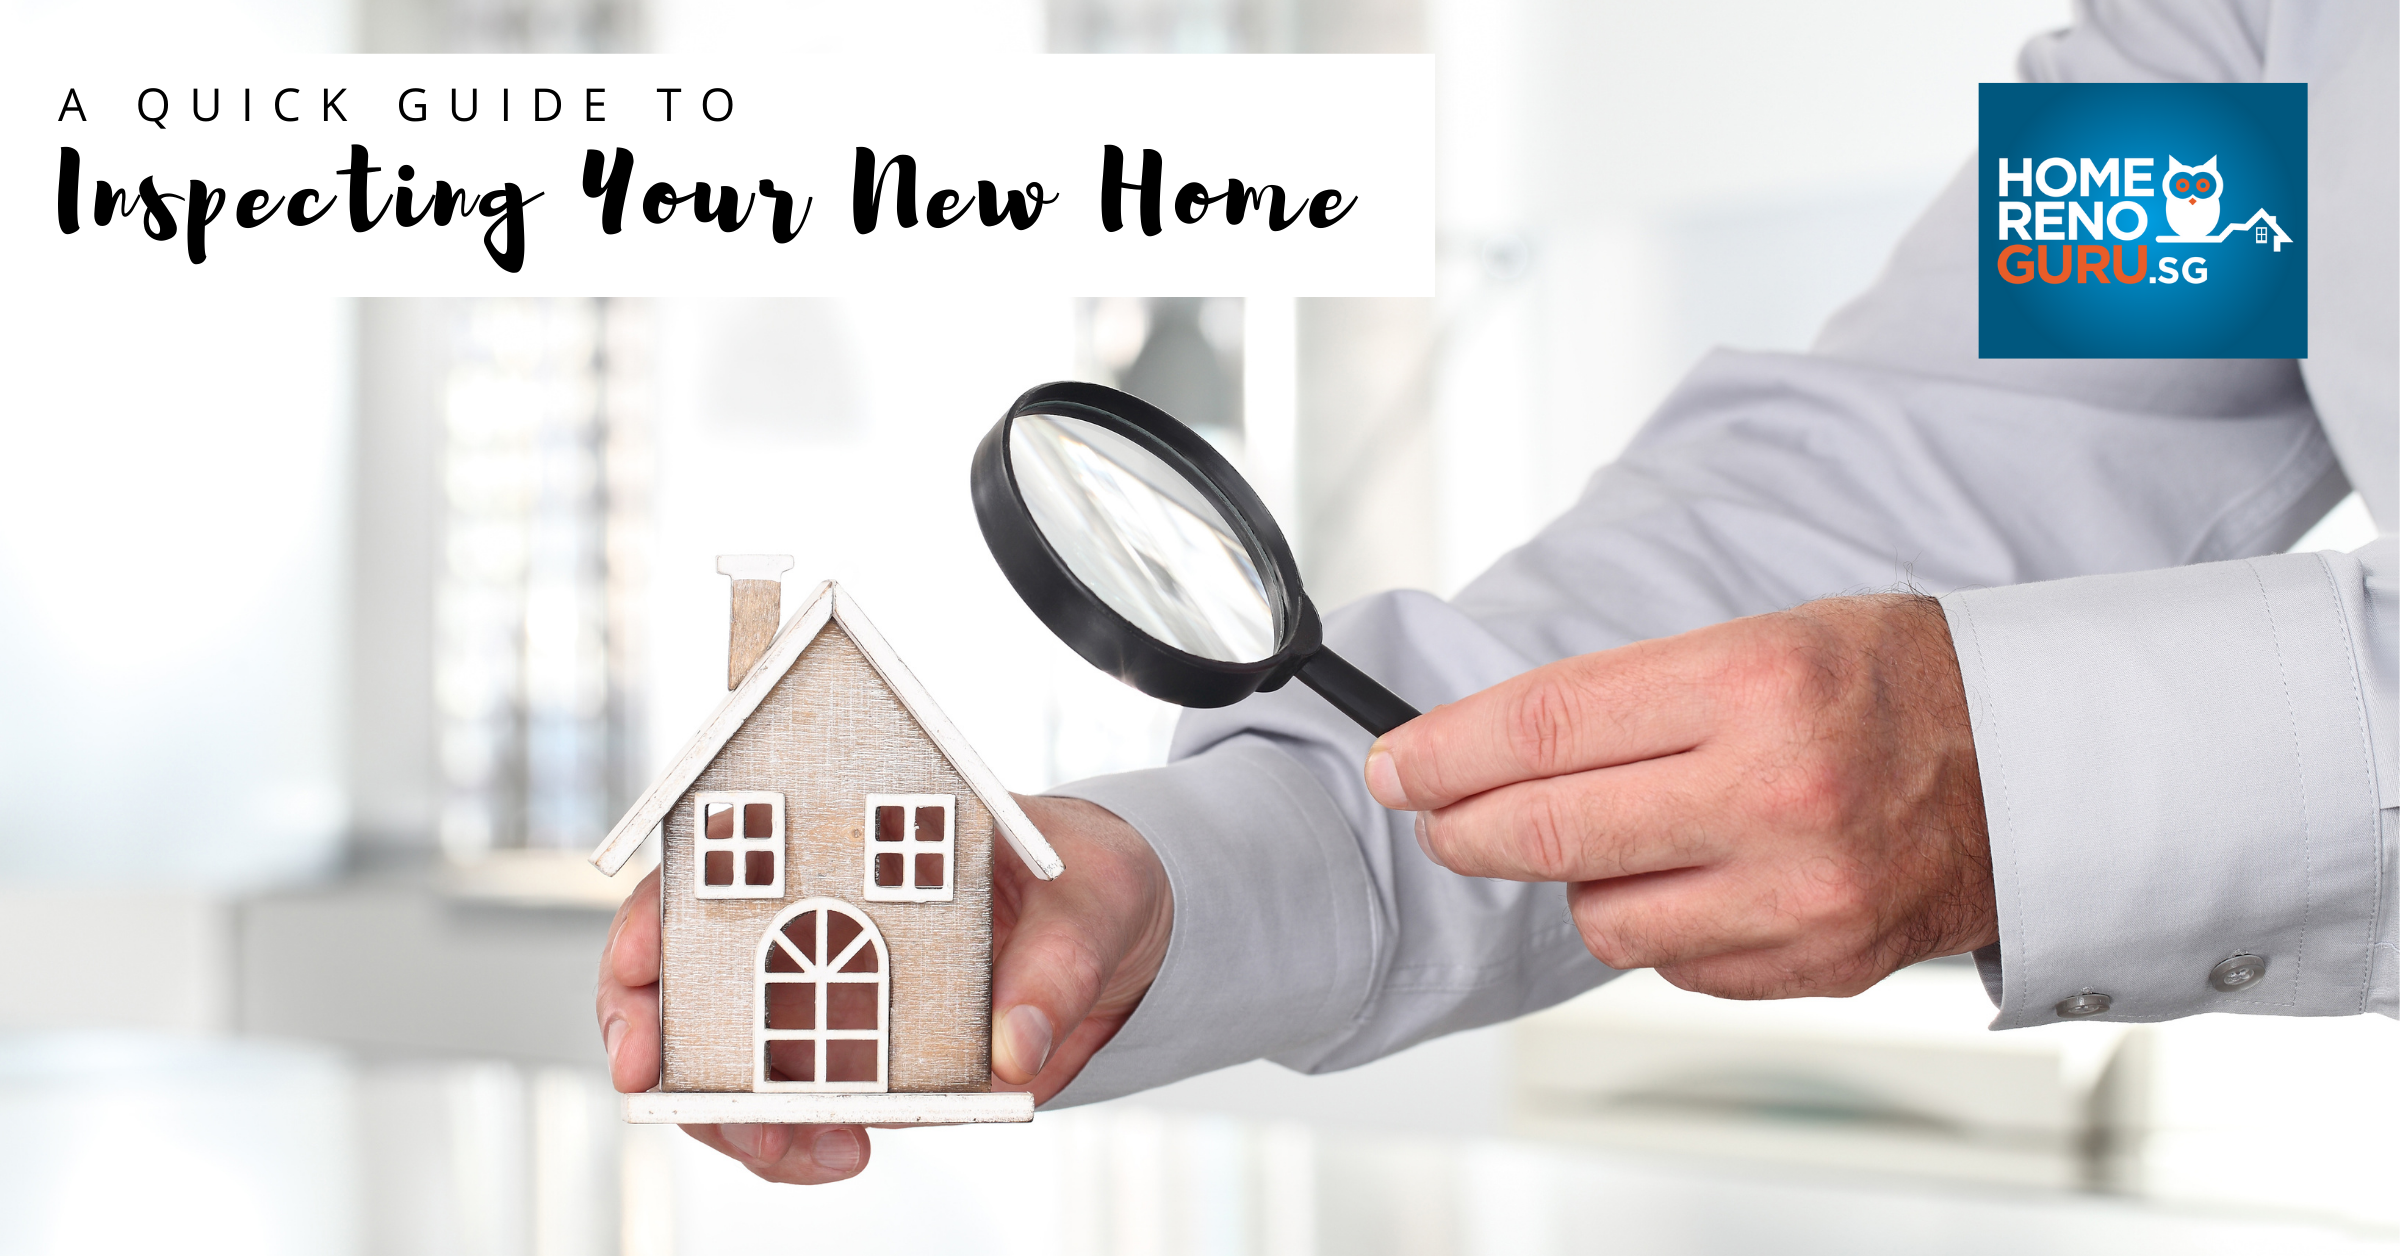 Guide to inspecting your new home